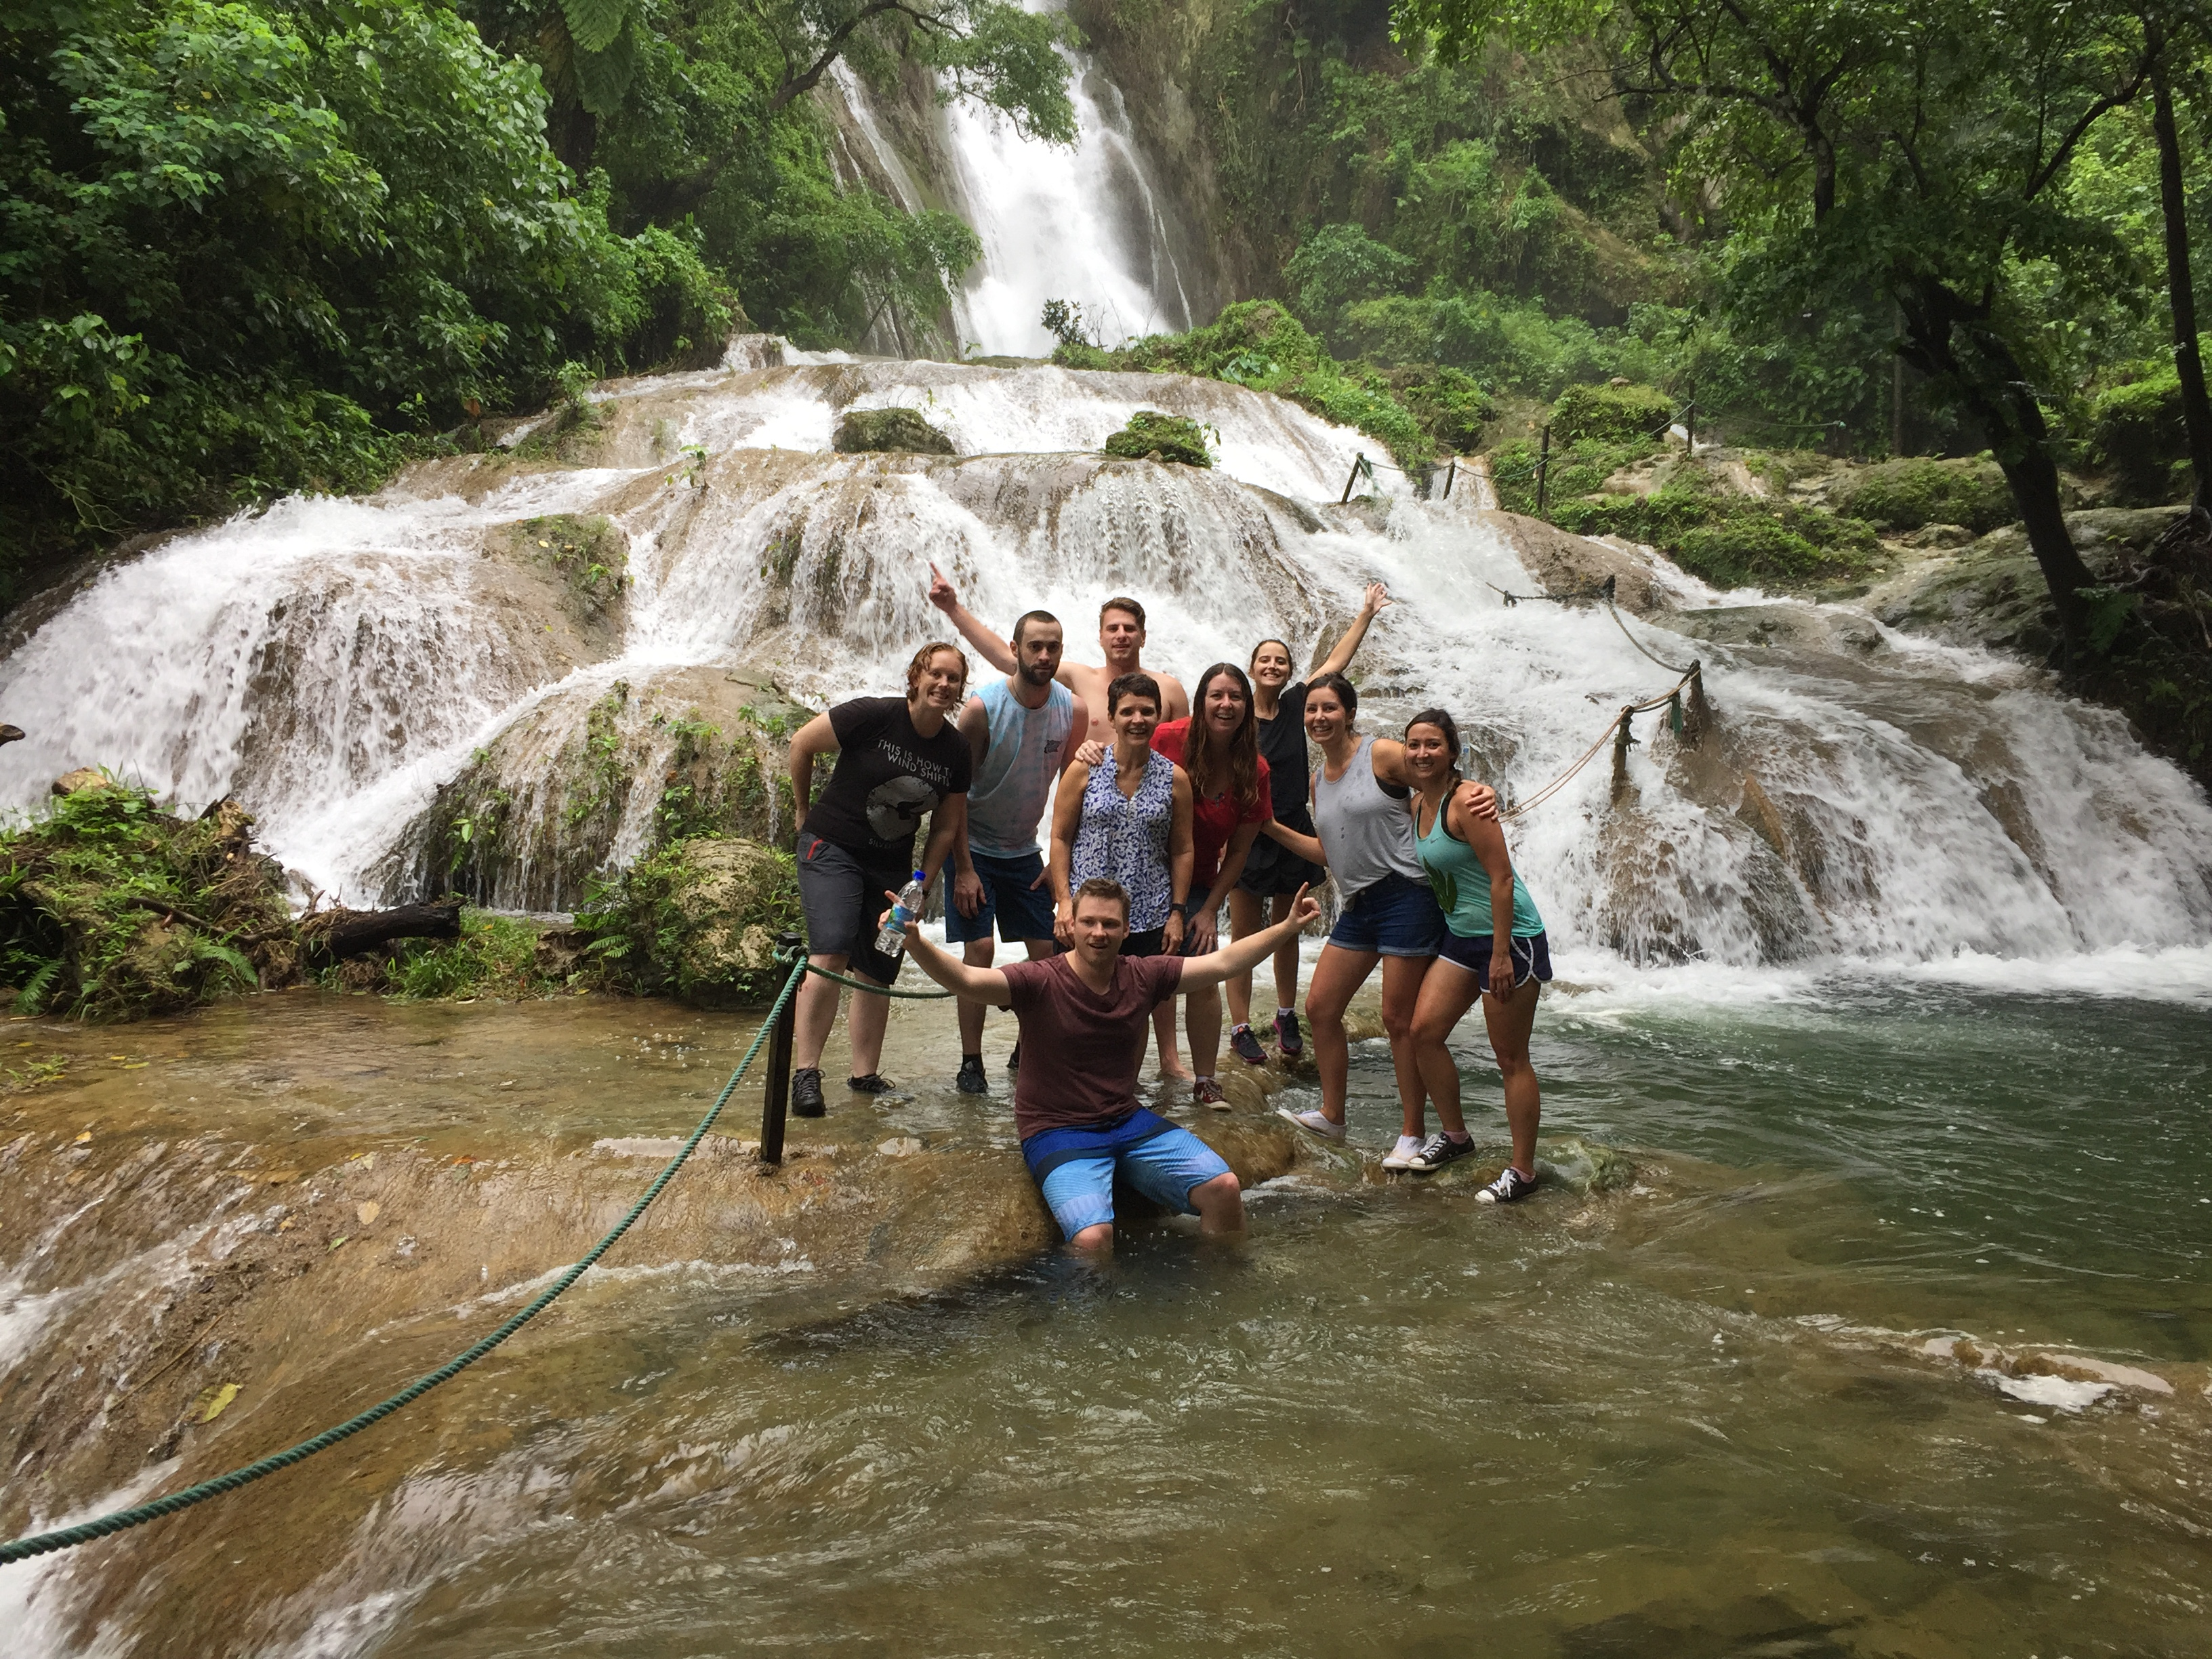 Hanna Shilo from Travel Projects recently returned from a famtrip to the idyllic island of the Dominican Republic with a selected small group of travel agents. They inspected some of the resorts in Punta Cana in the East and the Northern Coast of Cabarete, Sosua and Puerto Plata. The famtrip ended in the colonial capital of Santo Domingo. Here in the picture from left to right Josie McPaul from Bayview Travel, Sallee Vuletich from Travel Masters, James Jang from Where2Travel, Hanna Shilo from Travel Projects and Cindy Hazler from Holiday & Cruise Ballarat.